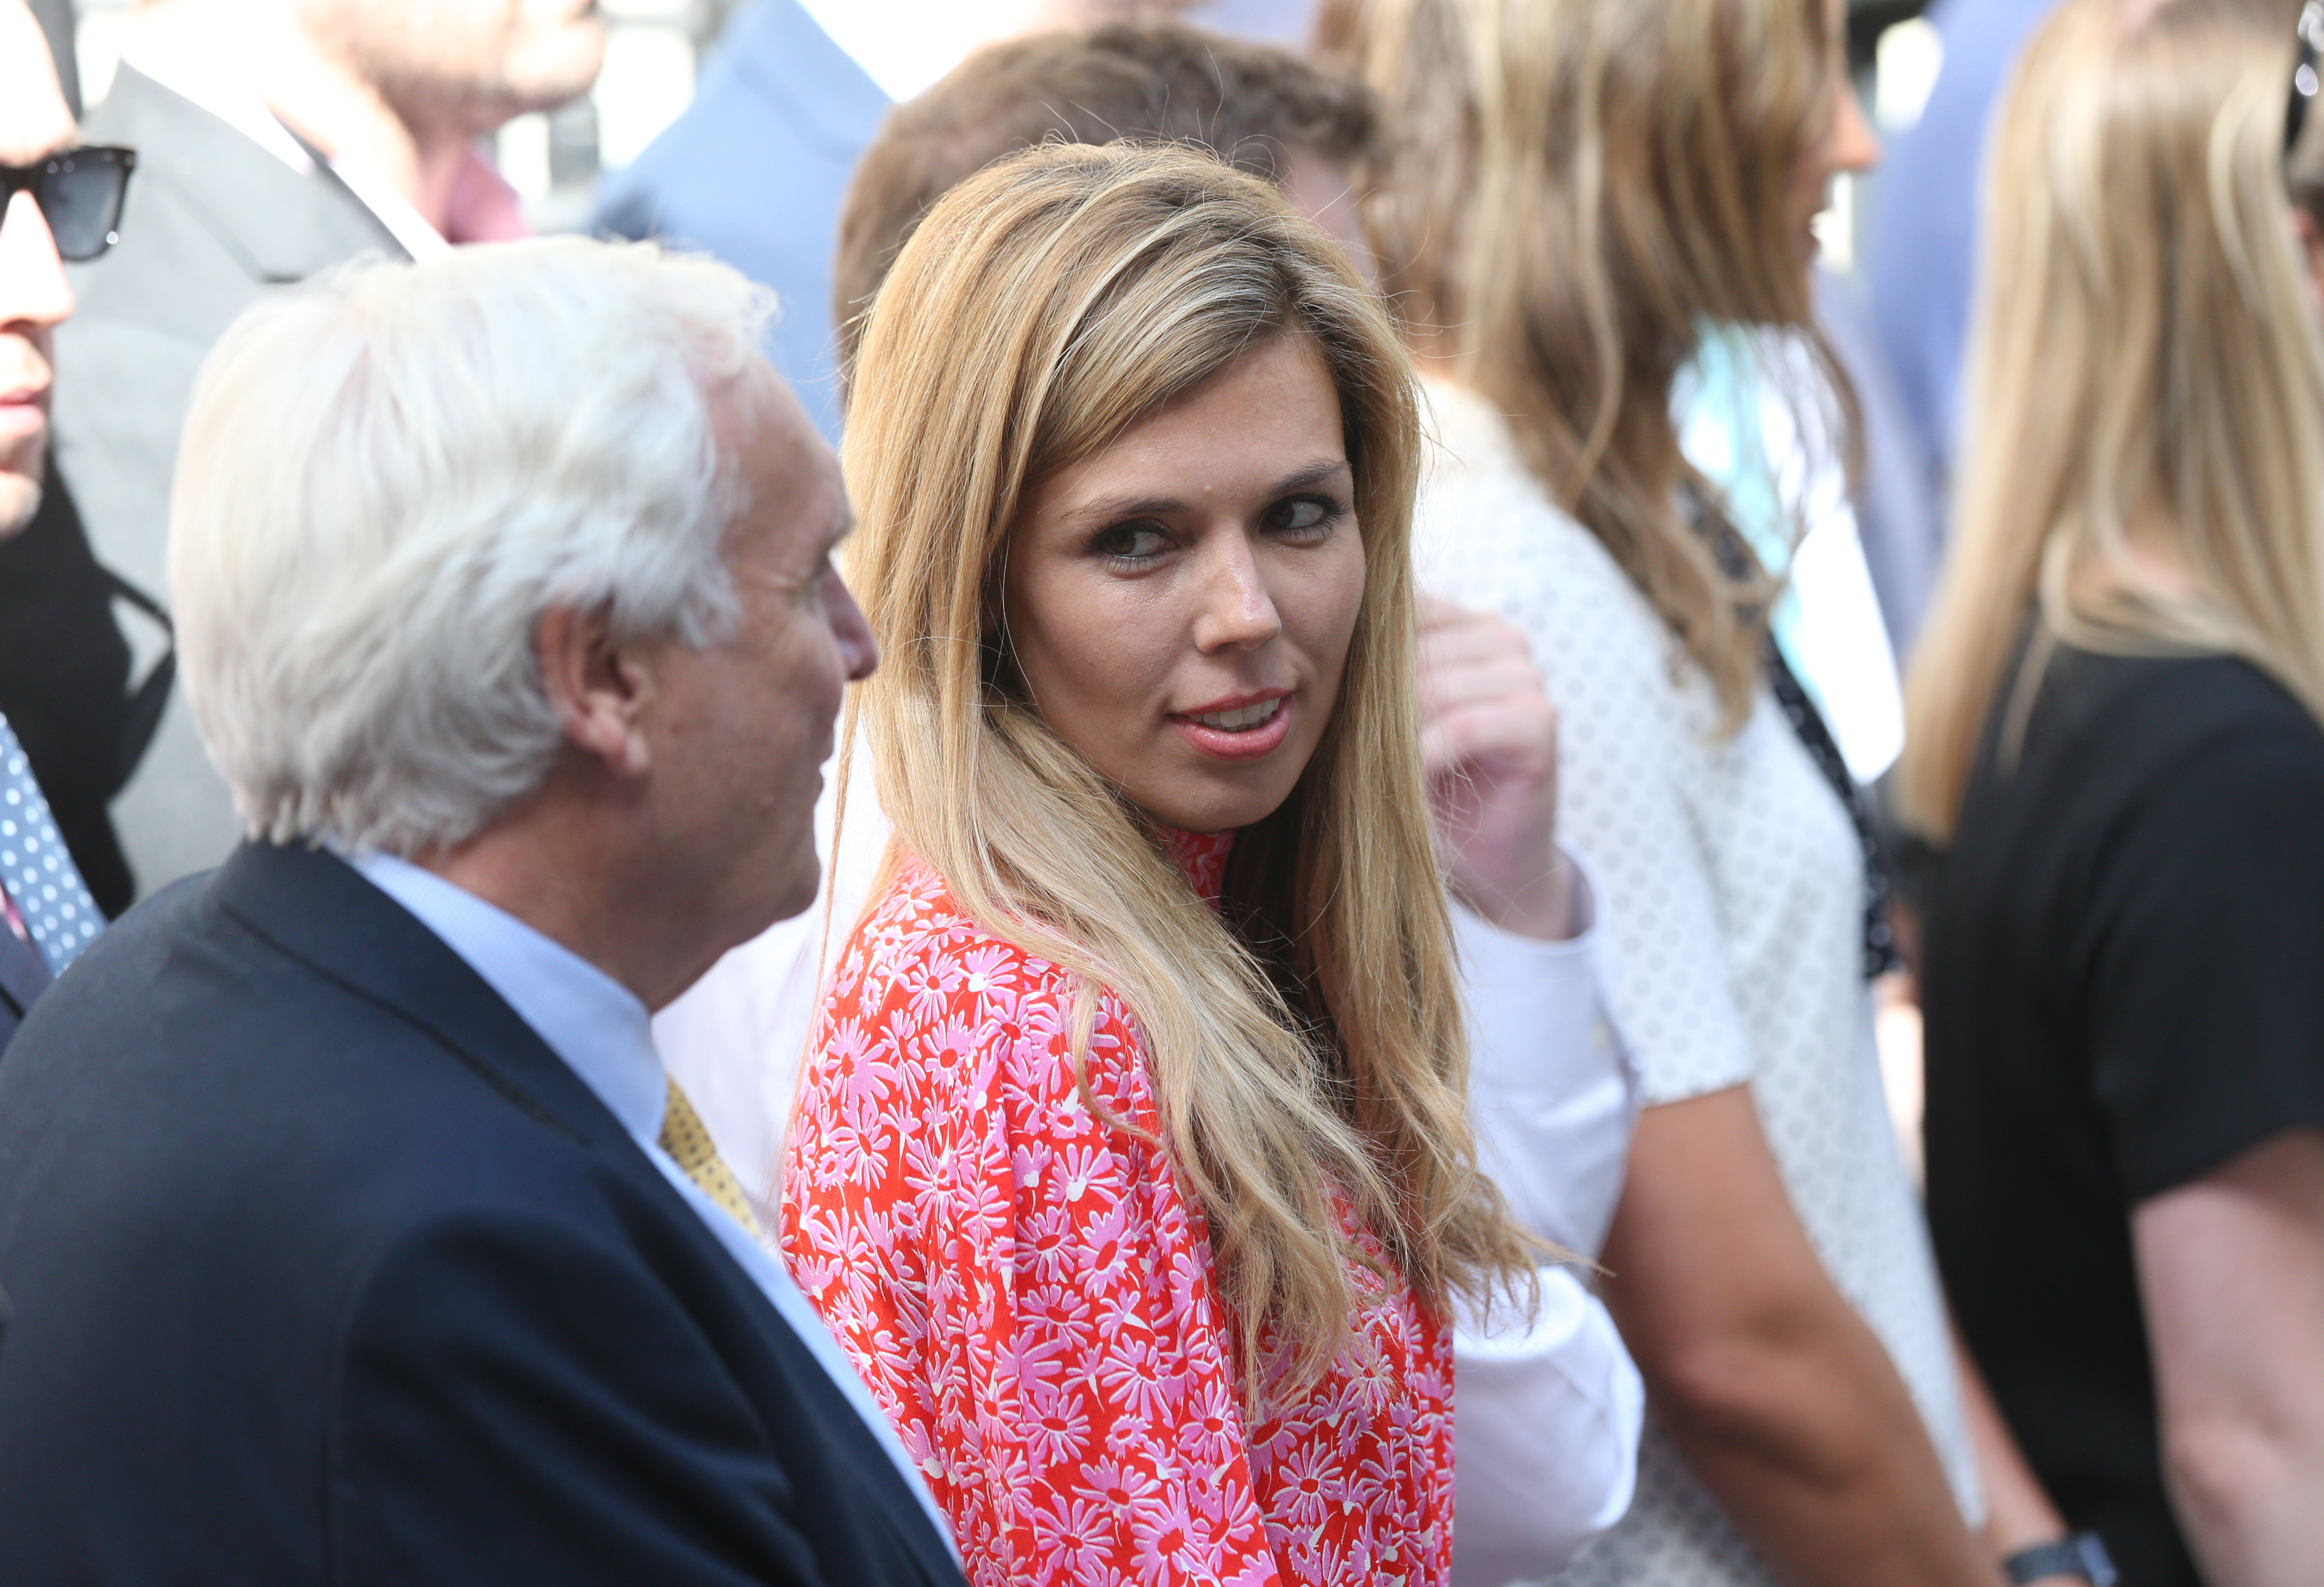 File photo dated 274/07/19 of Prime Minister Boris Johnson's partner Carrie Symonds, who is expected to speak publicly for the first time since moving into Downing Street at an environmental event.